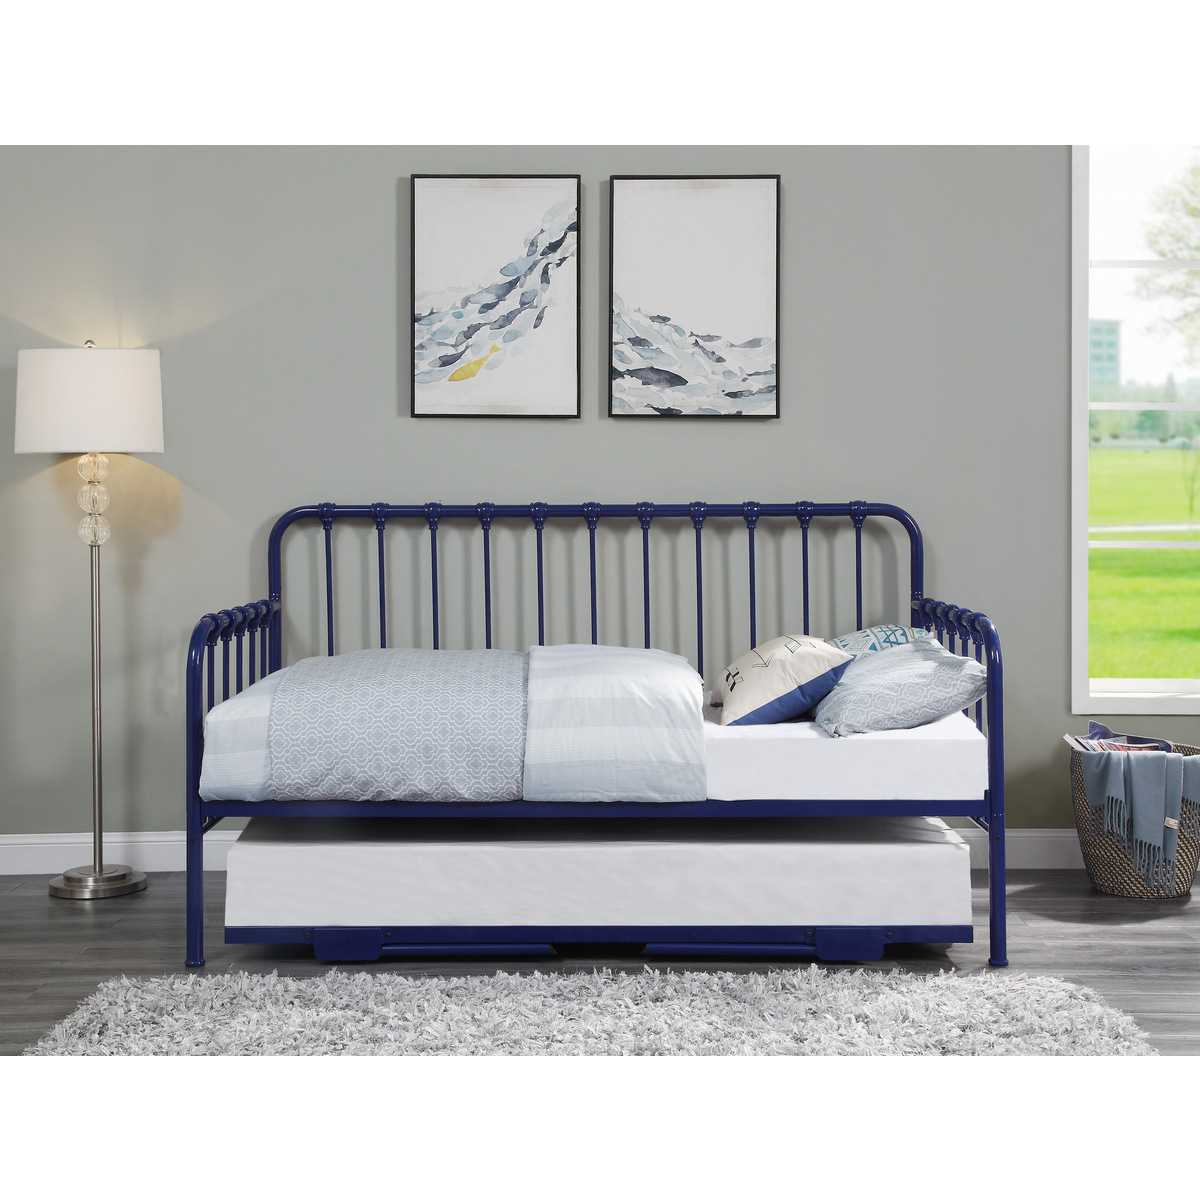 4983BU-NT DAYBED WITH LIFT-UP TRUNDLE, BLUE